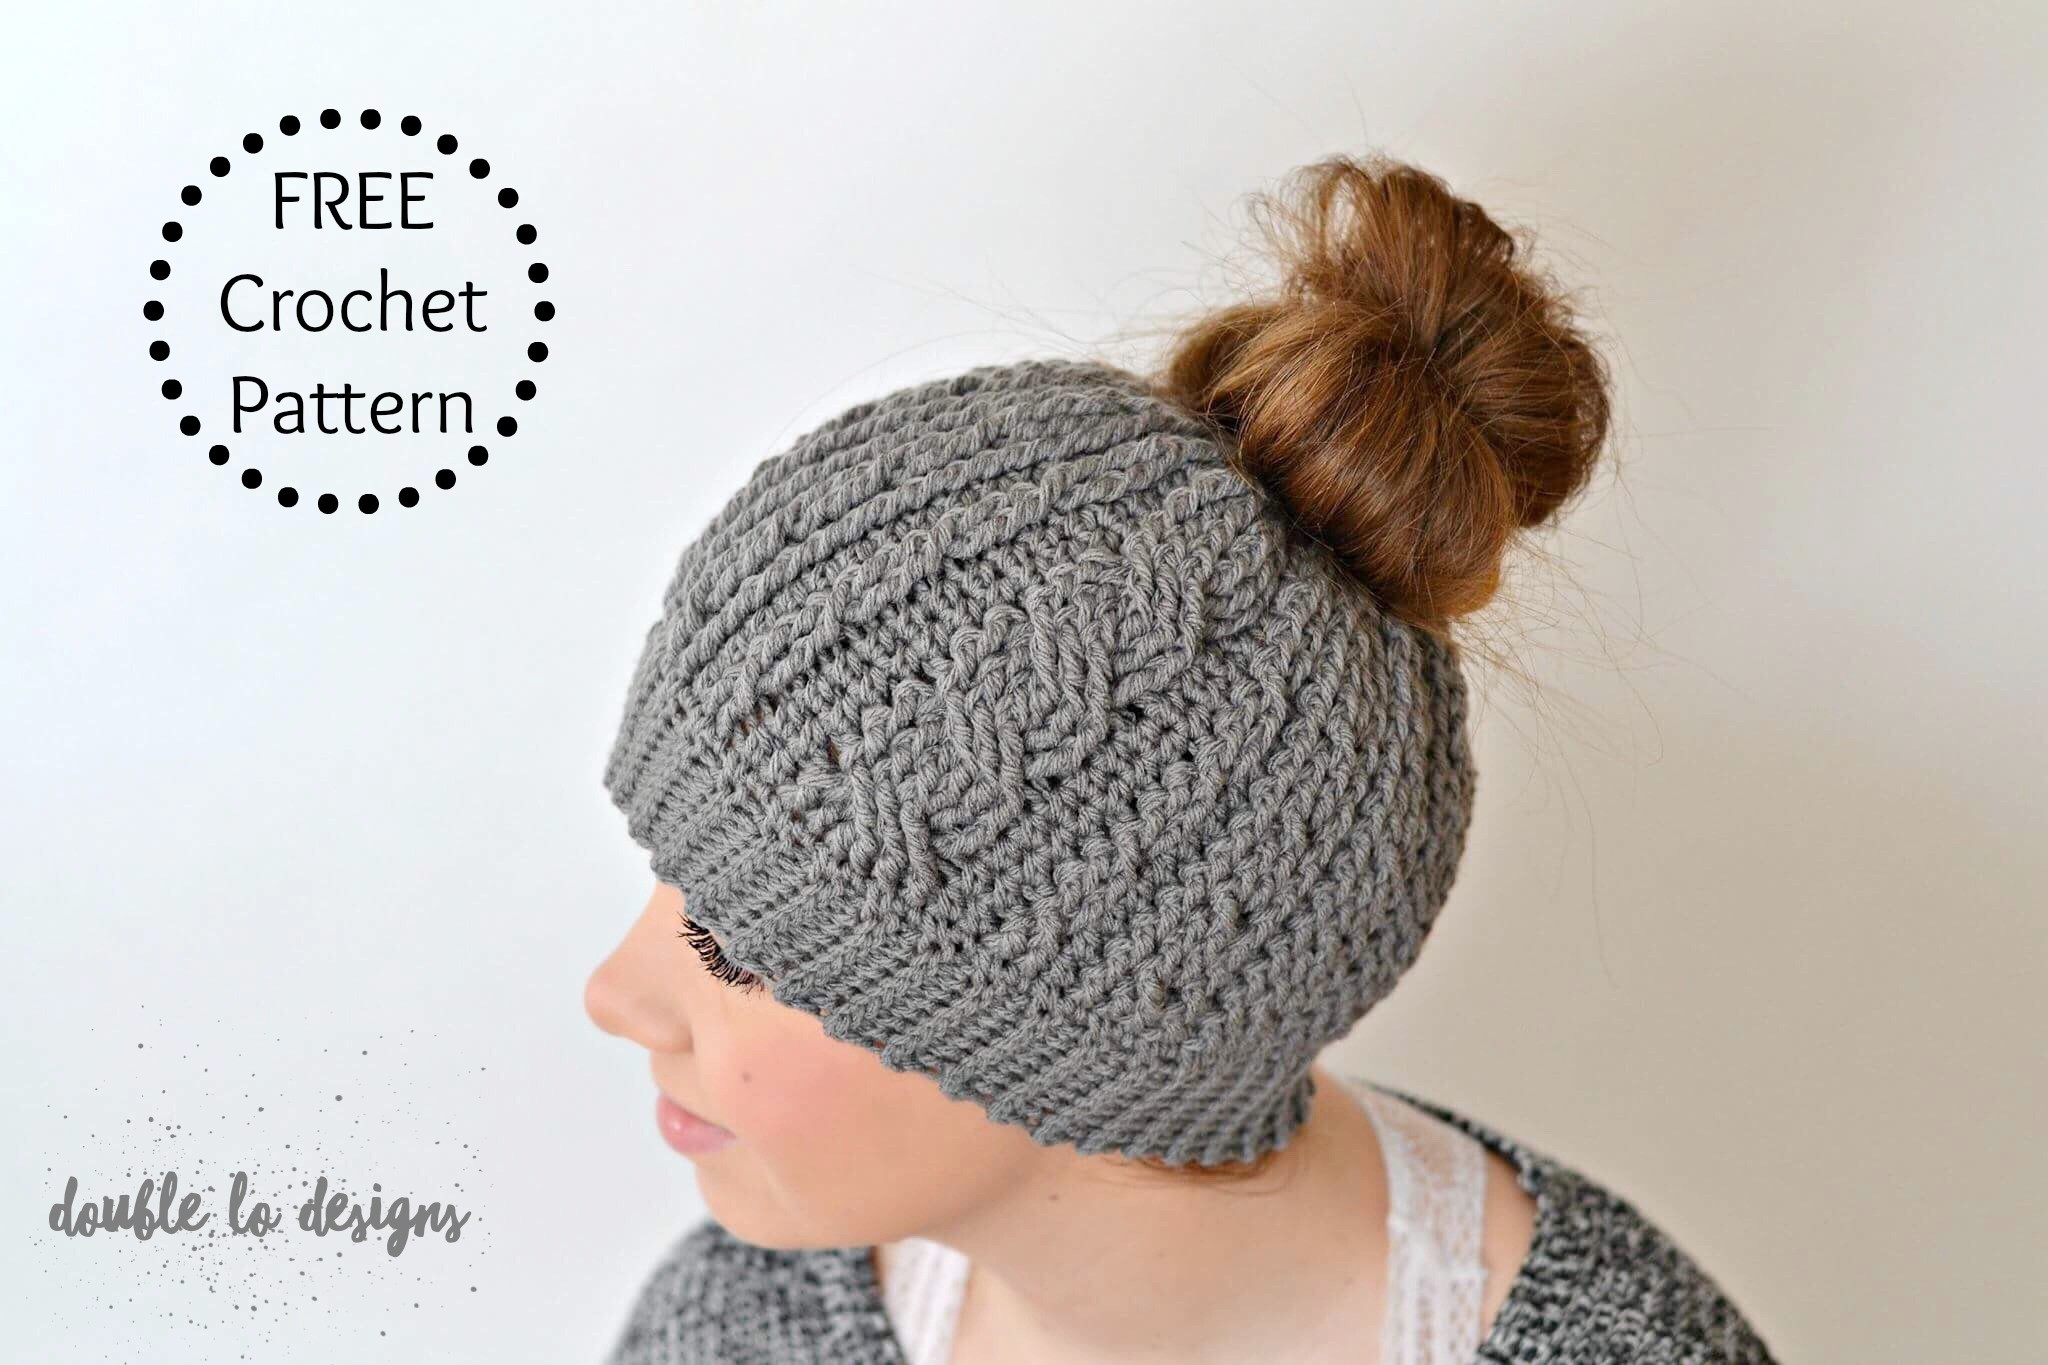 Best Of Free Crochet Pattern Crochet Cabled Messy Bun Hat Adult Messy Bun Beanie Crochet Pattern Of Adorable 45 Pics Messy Bun Beanie Crochet Pattern